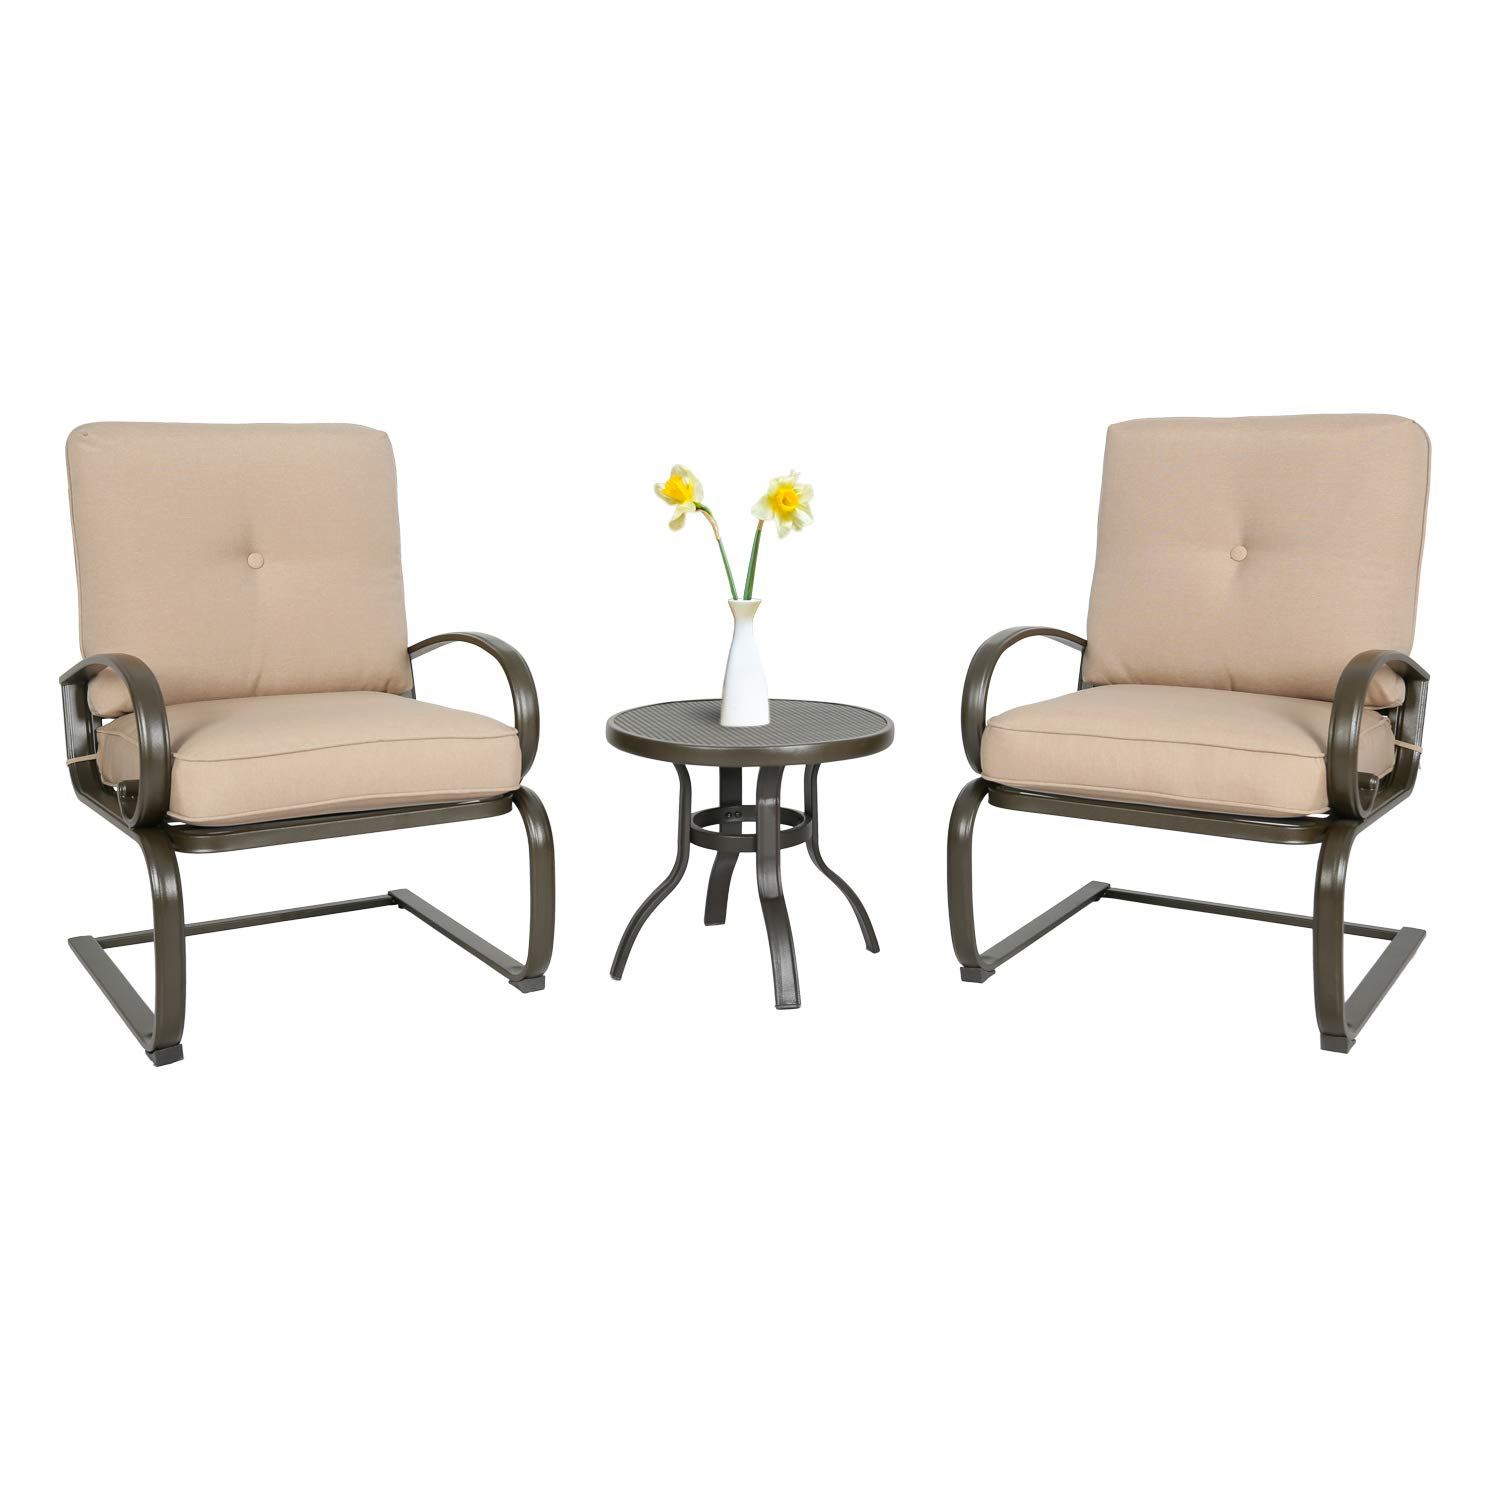 Iwicker Patio 3 PCS Bistro Set Outdoor Springs Motion Chairs and Round Table Beige